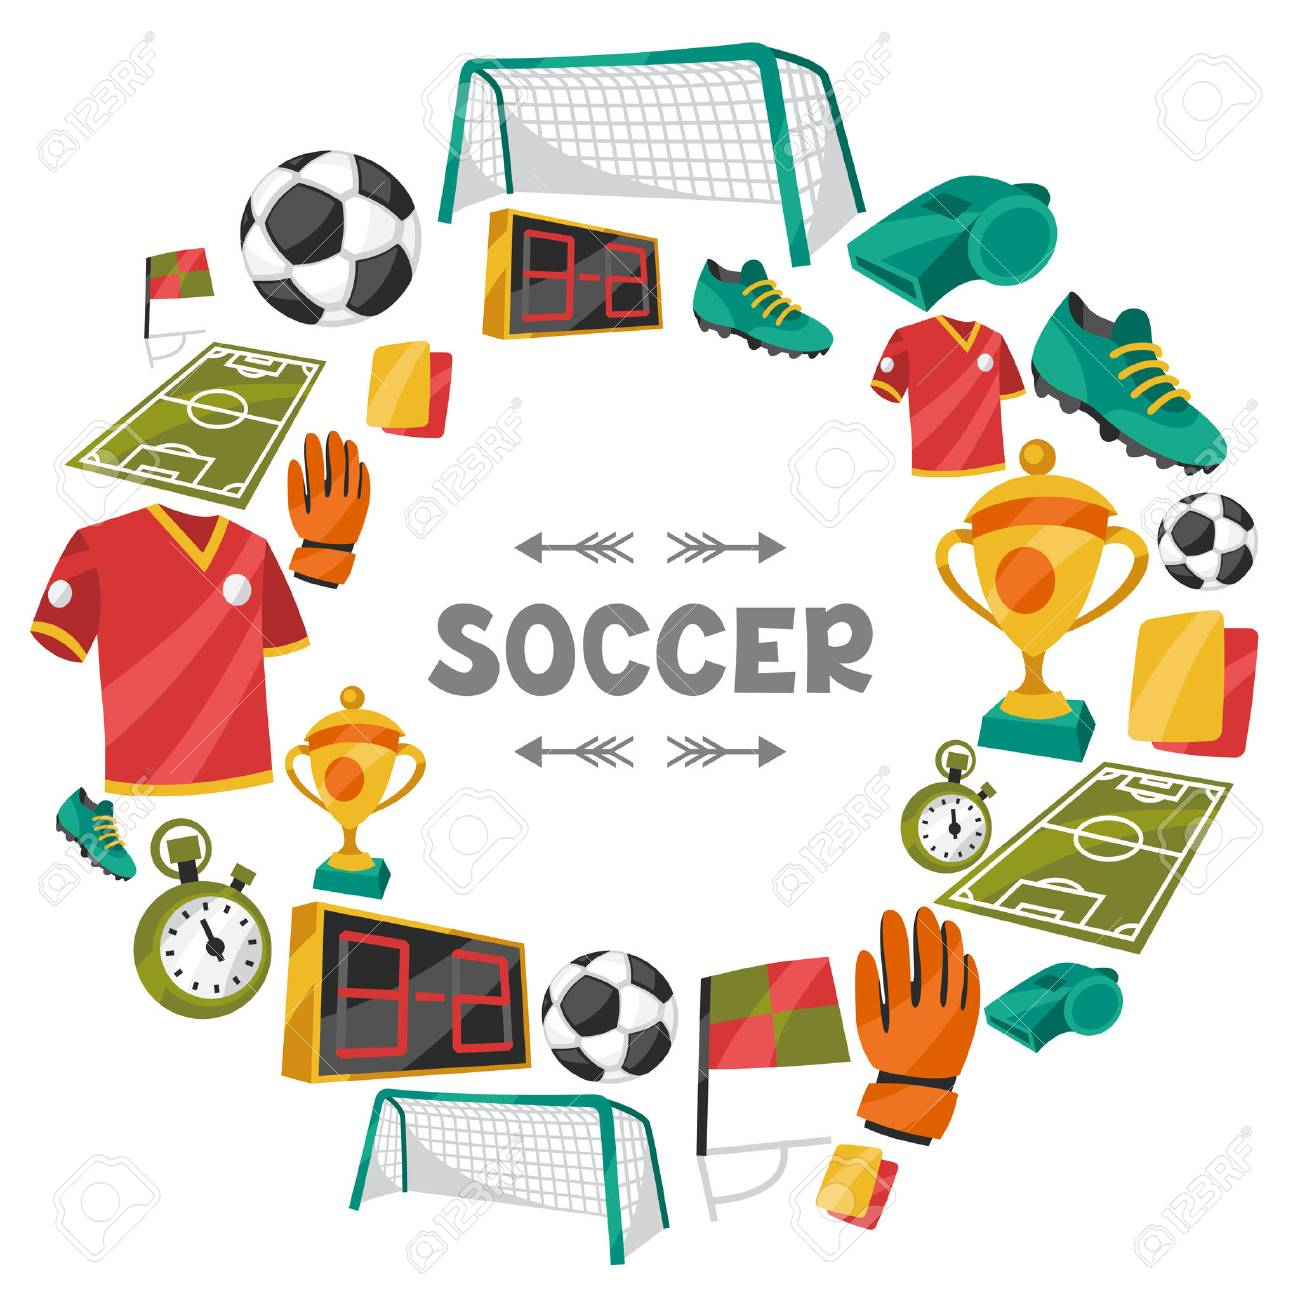 Sports background with soccer football symbols. - 36803115